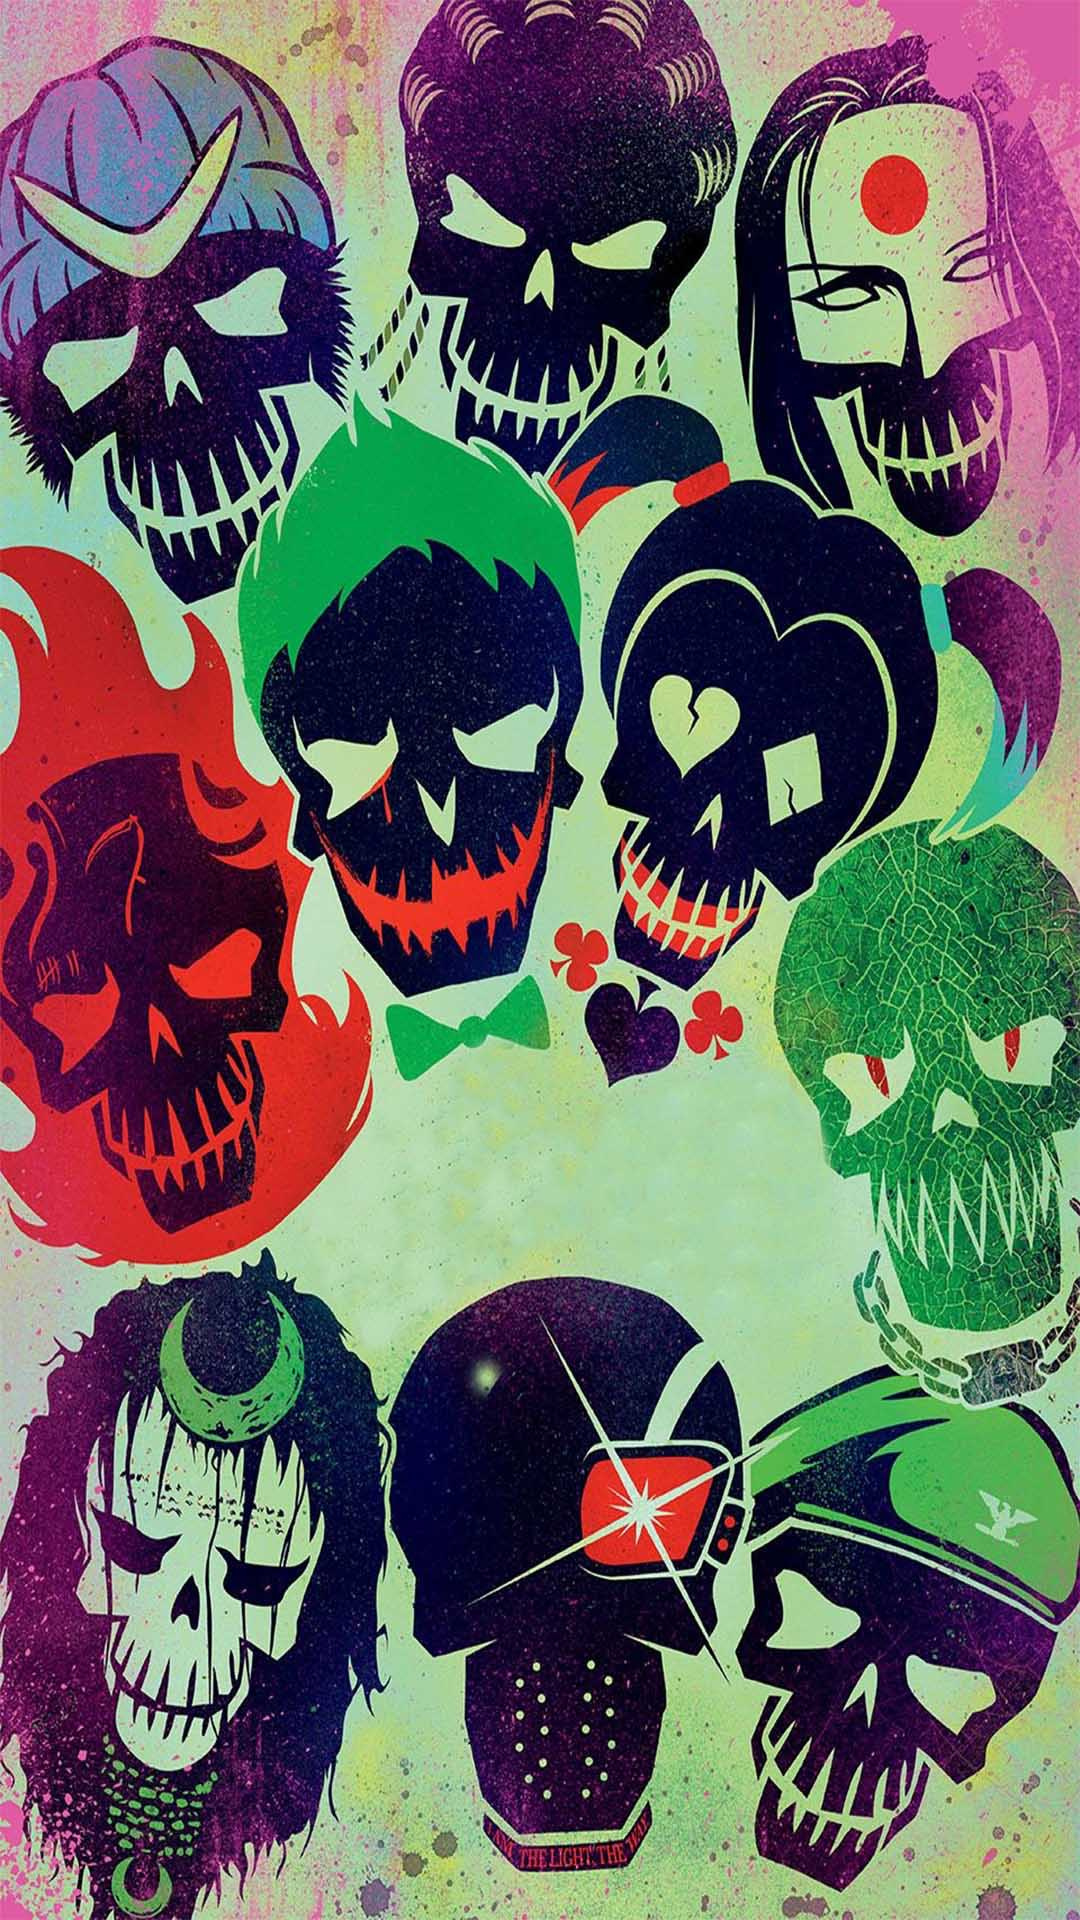 iPhone wallpaper suicide squad team 3Wallpapers : notre sélection de fonds d'écran du 16/04/2018